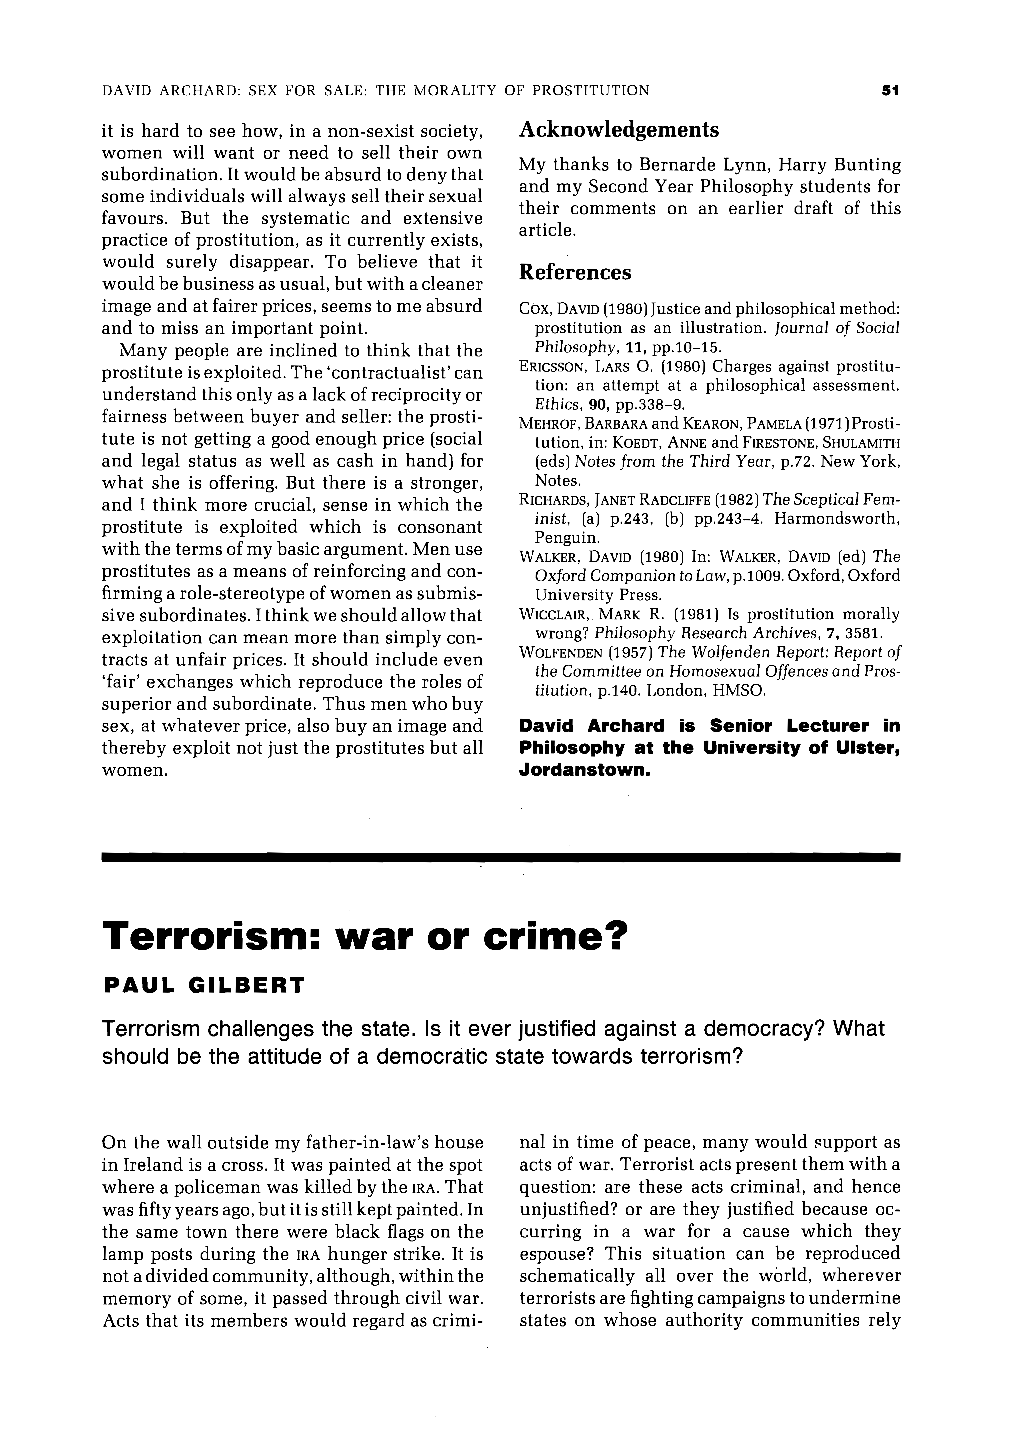 is terrorism ever morally justified